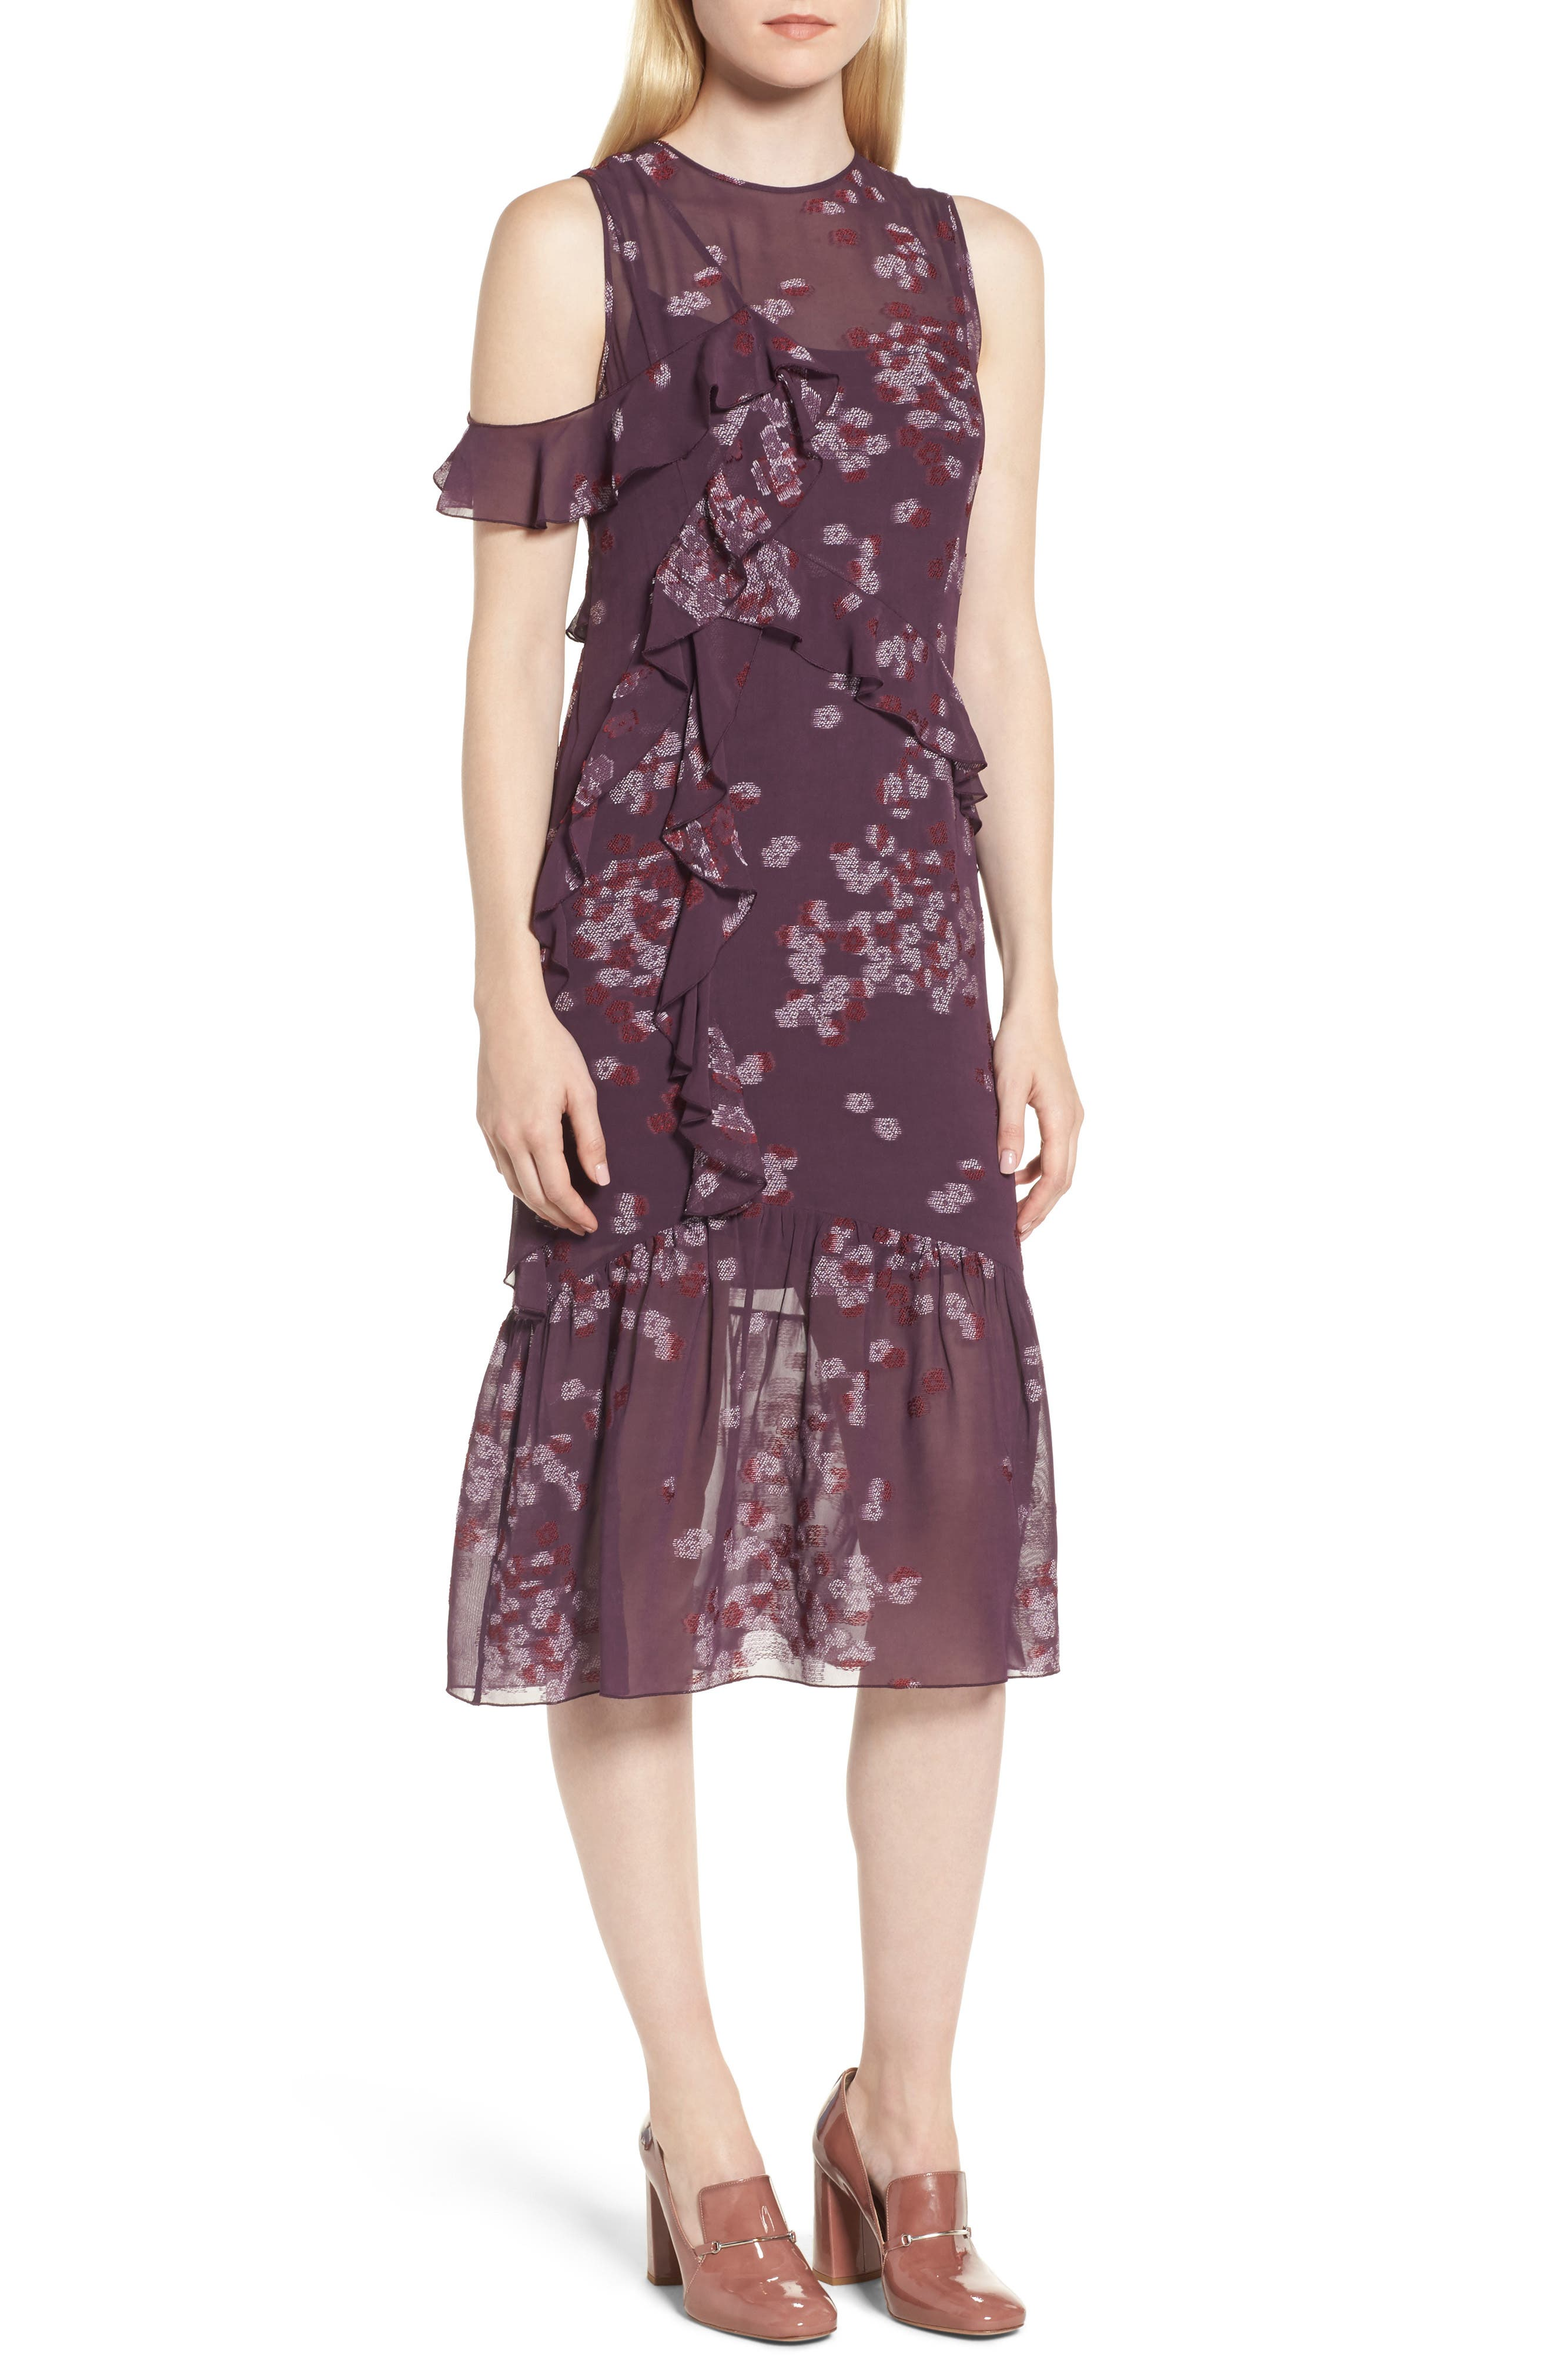 Lewit Jacquard Ruffle Dress